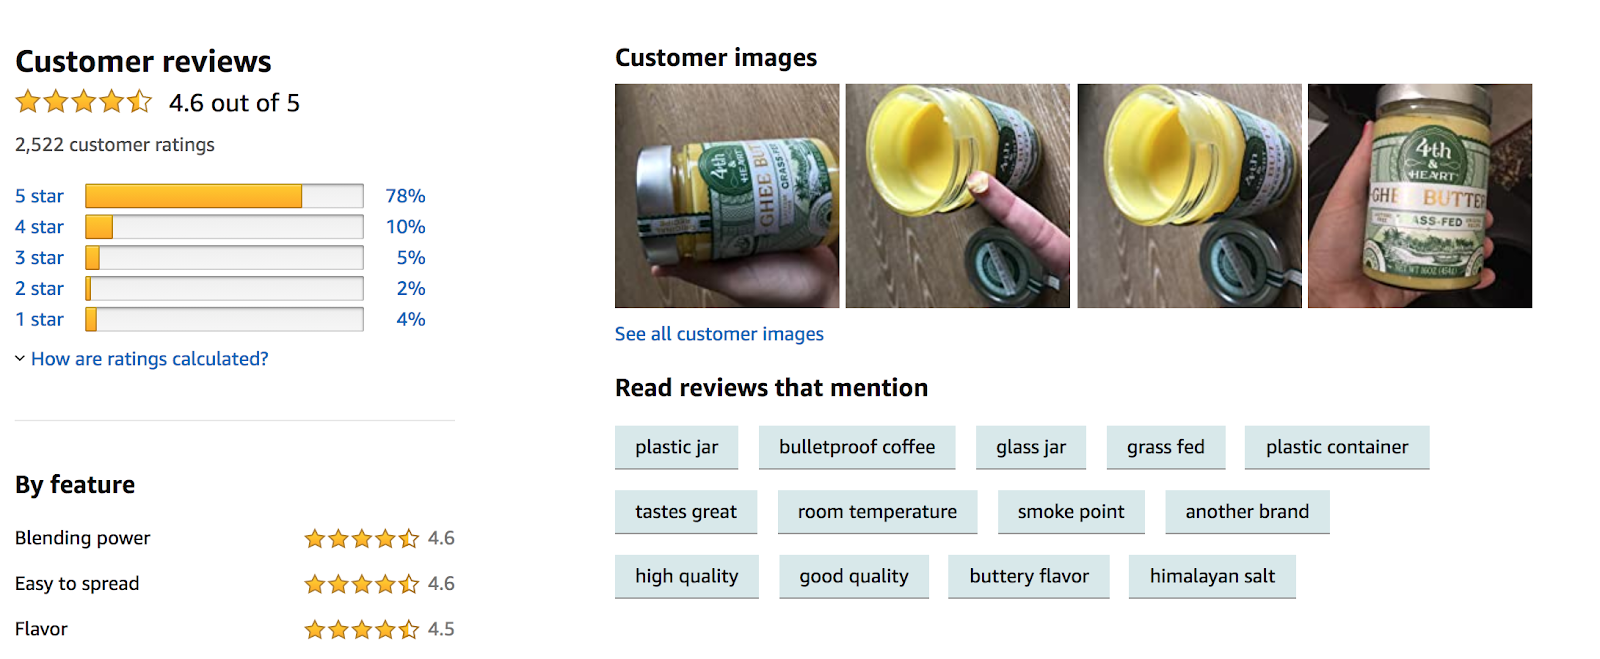 Customer review example from Ghee butter brand